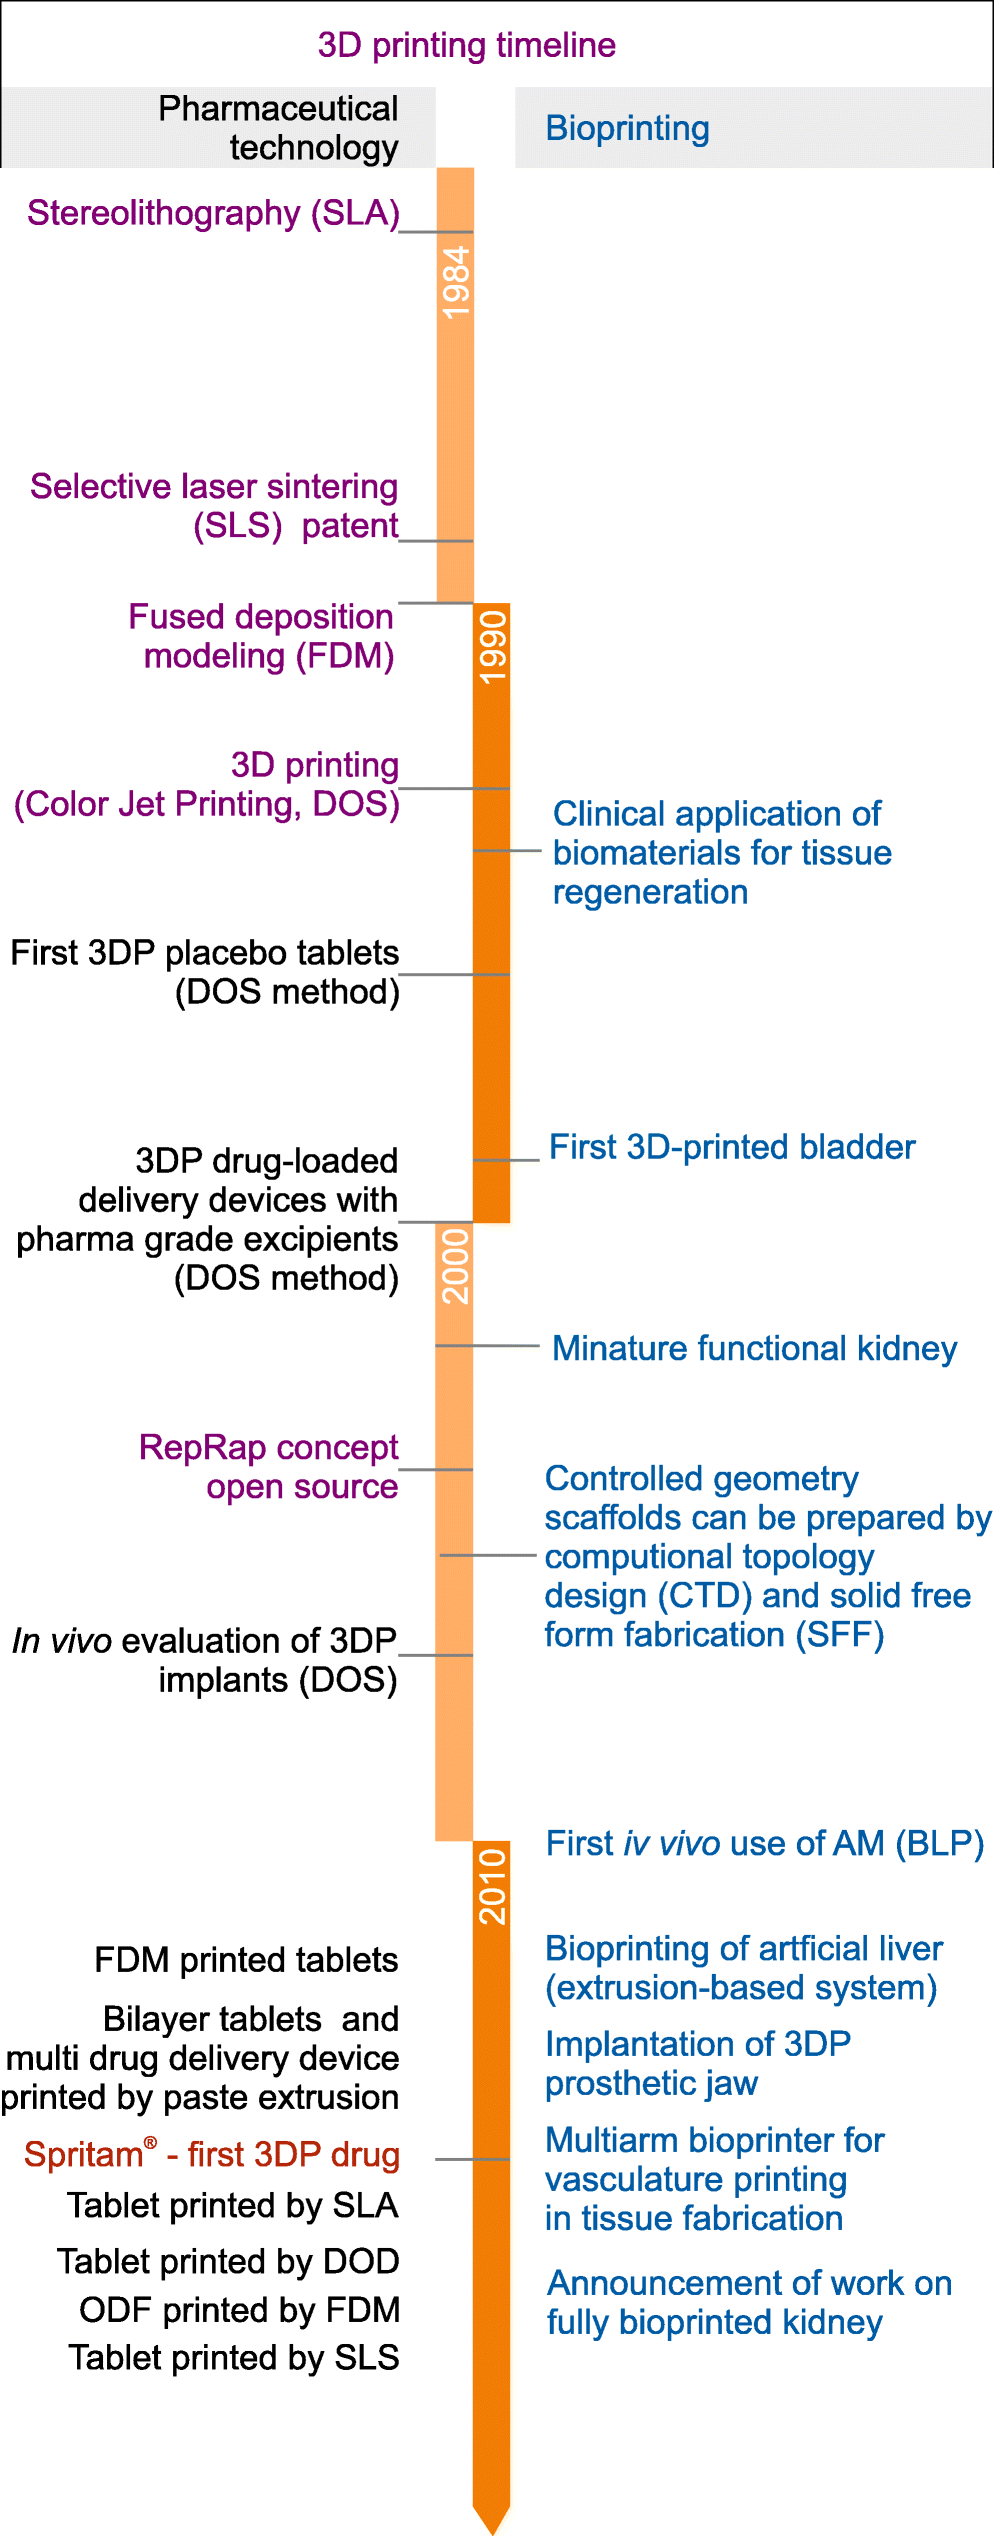 3D Printing in Pharmaceutical and Medical Applications – Recent